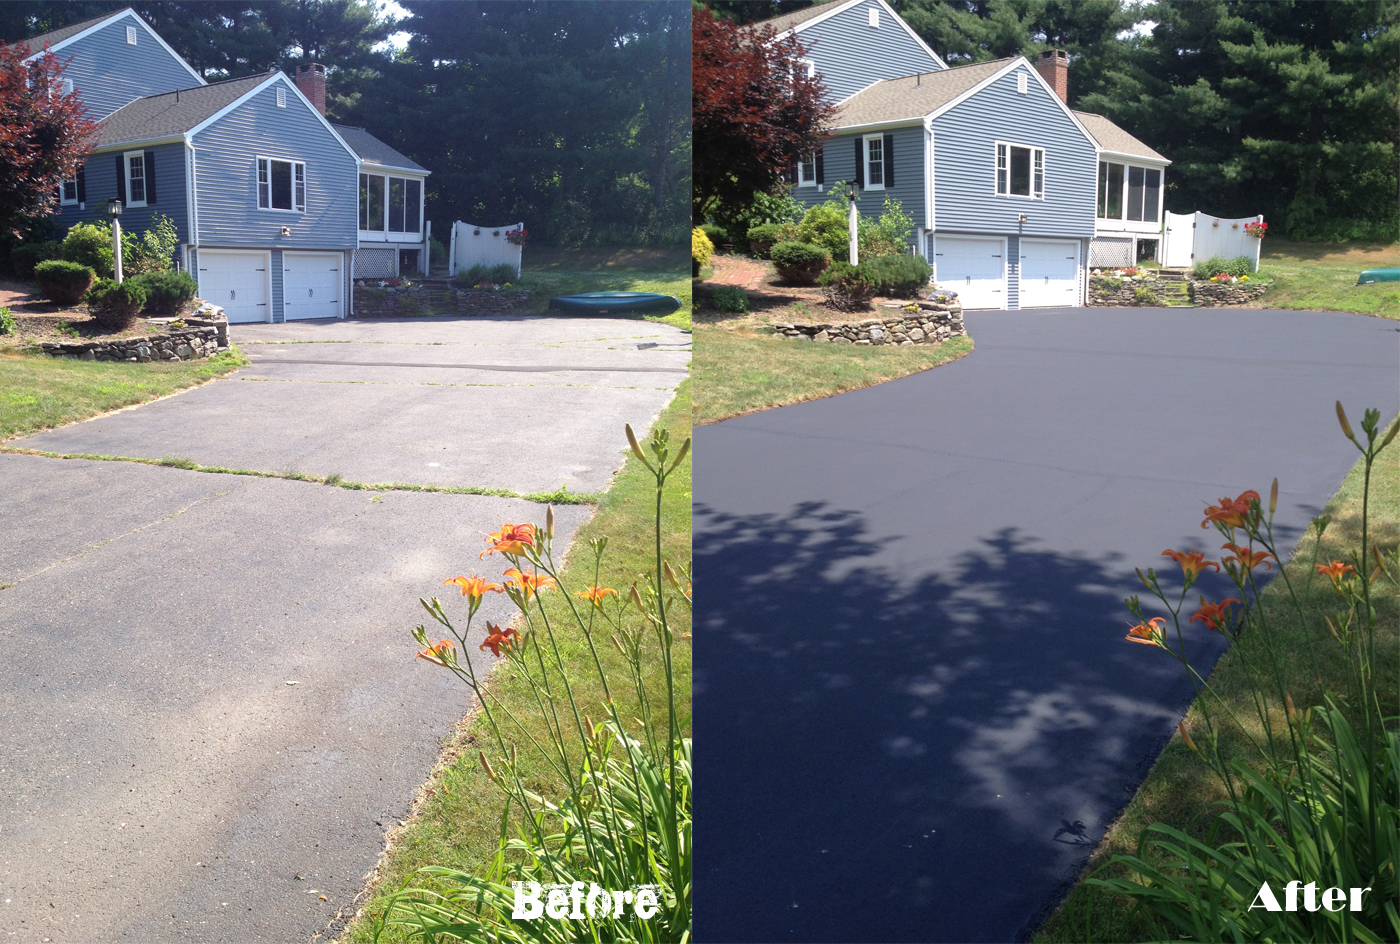 Before and After: Residential Driveway Seal Coat